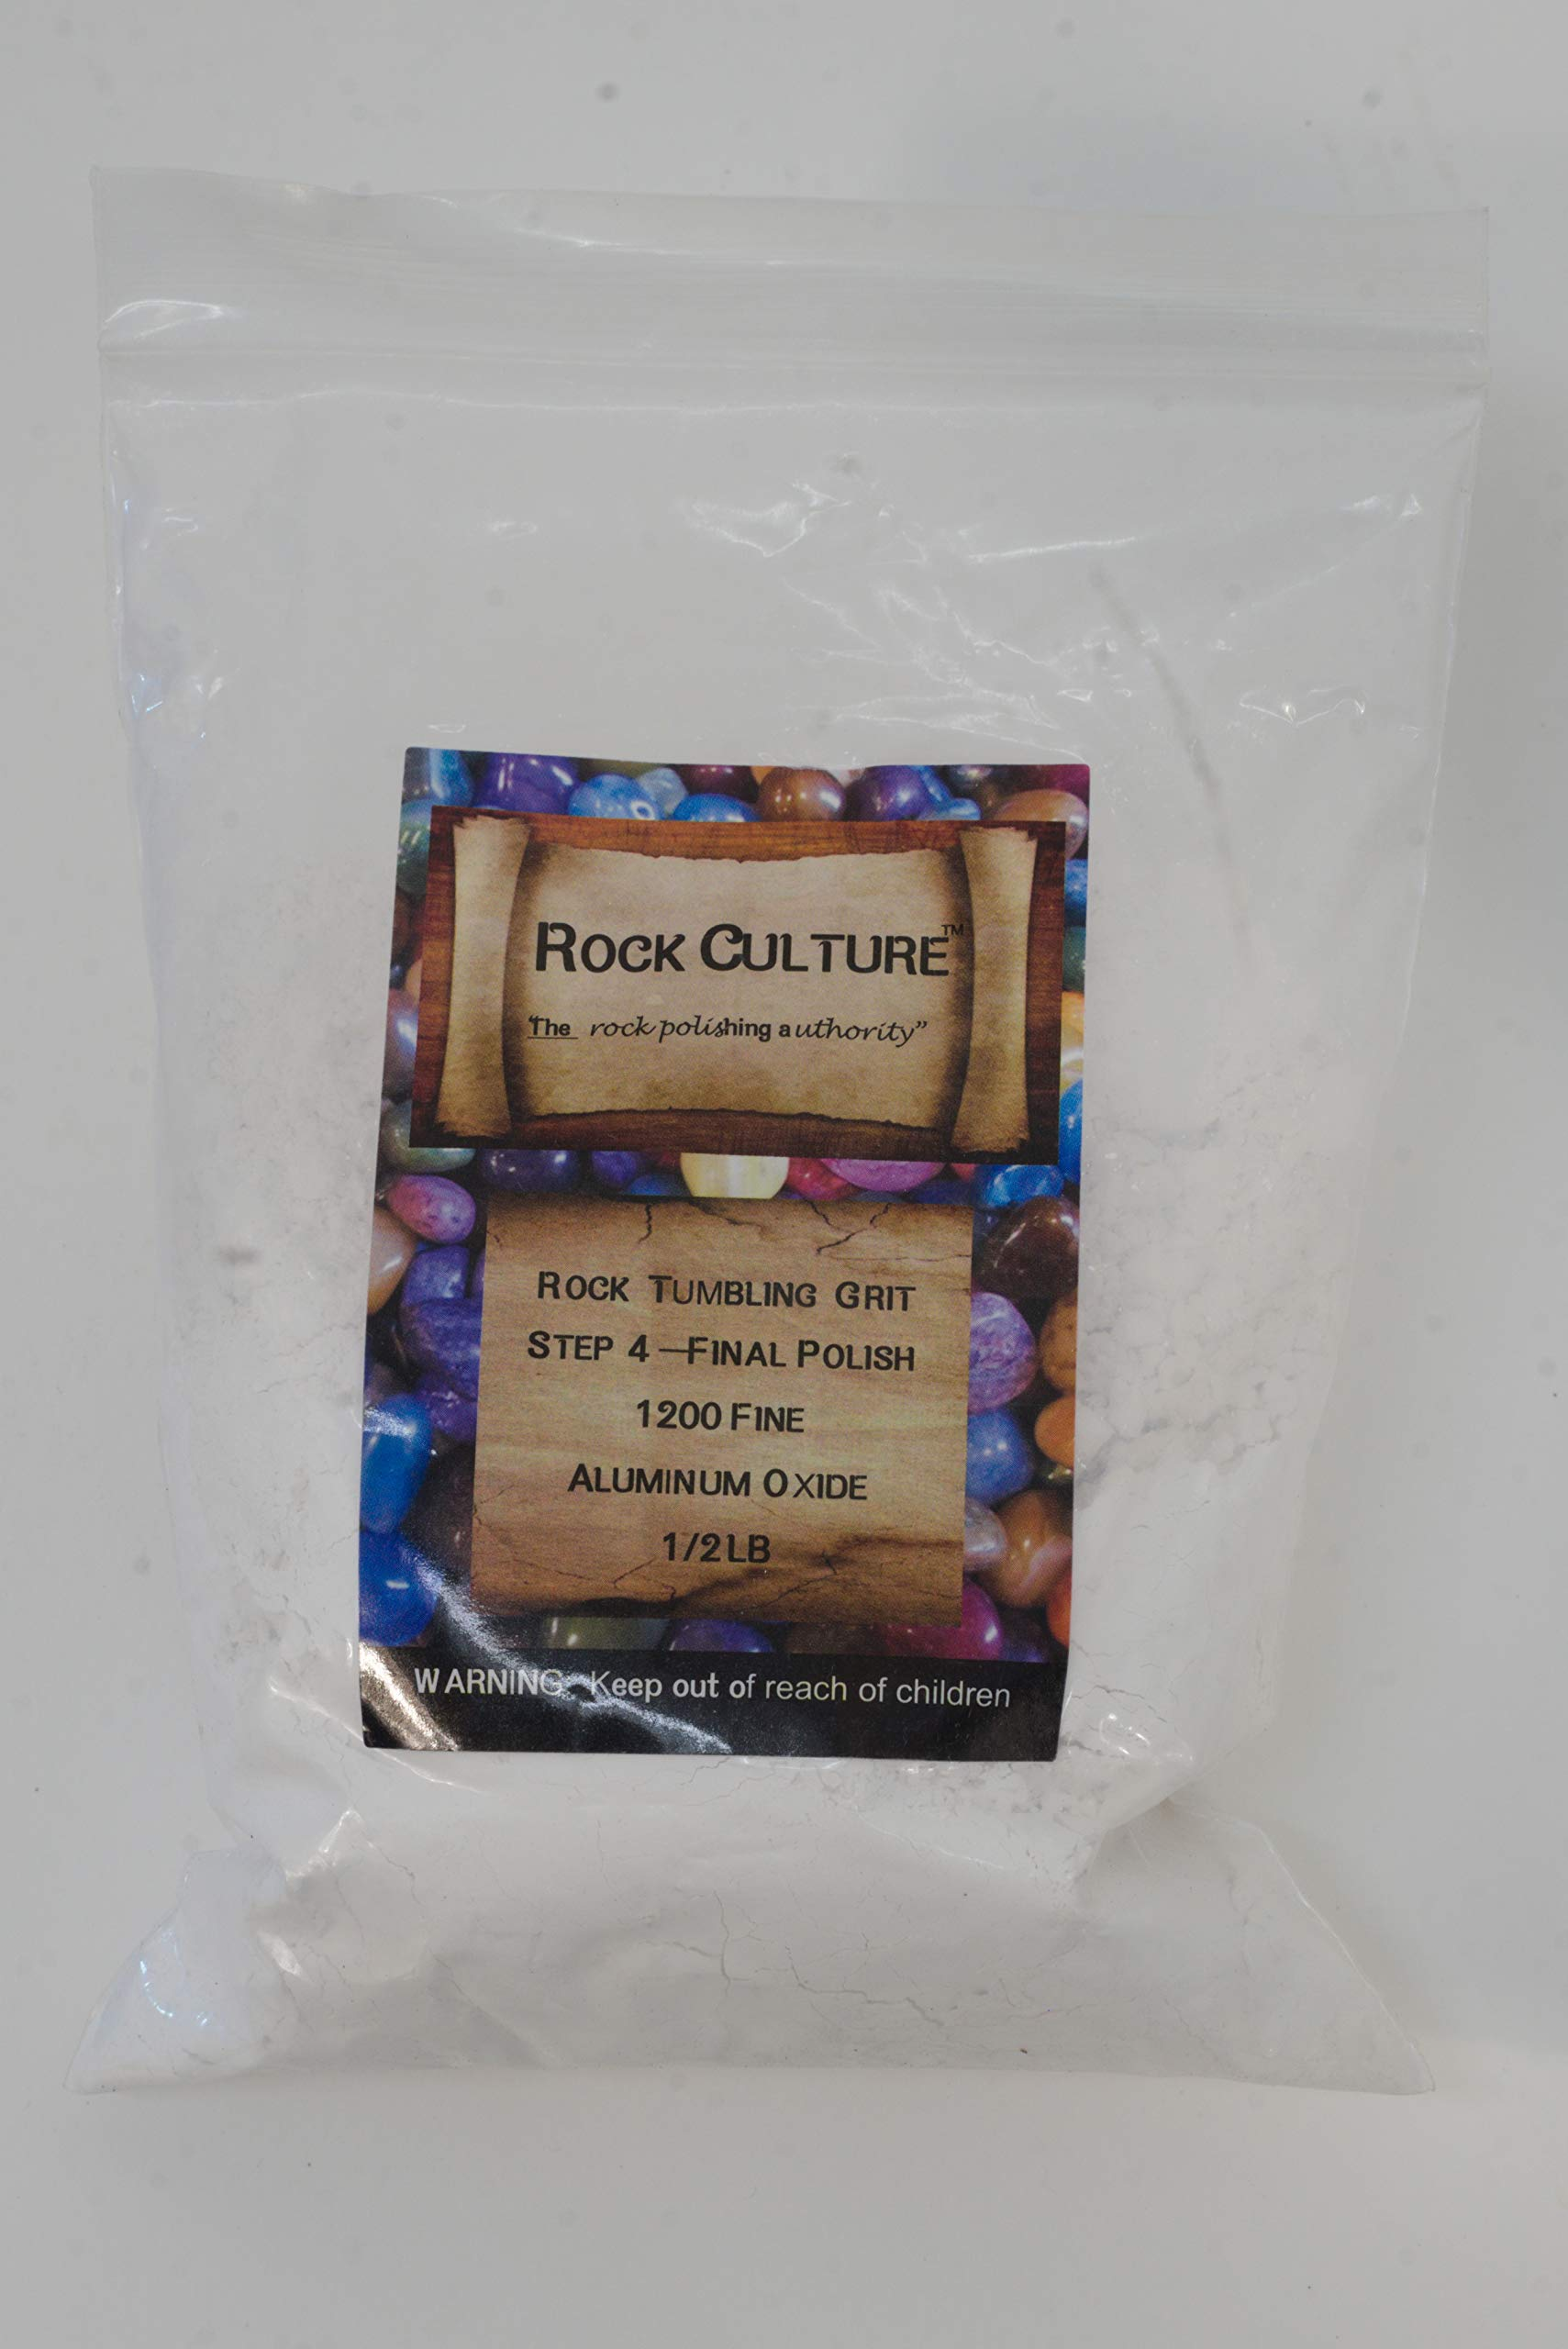 Rock Culture Rock Tumbler Tumbling Media Grit Kit in Heavy Duty Resealable Bags - No Filler Material by Rock Culture